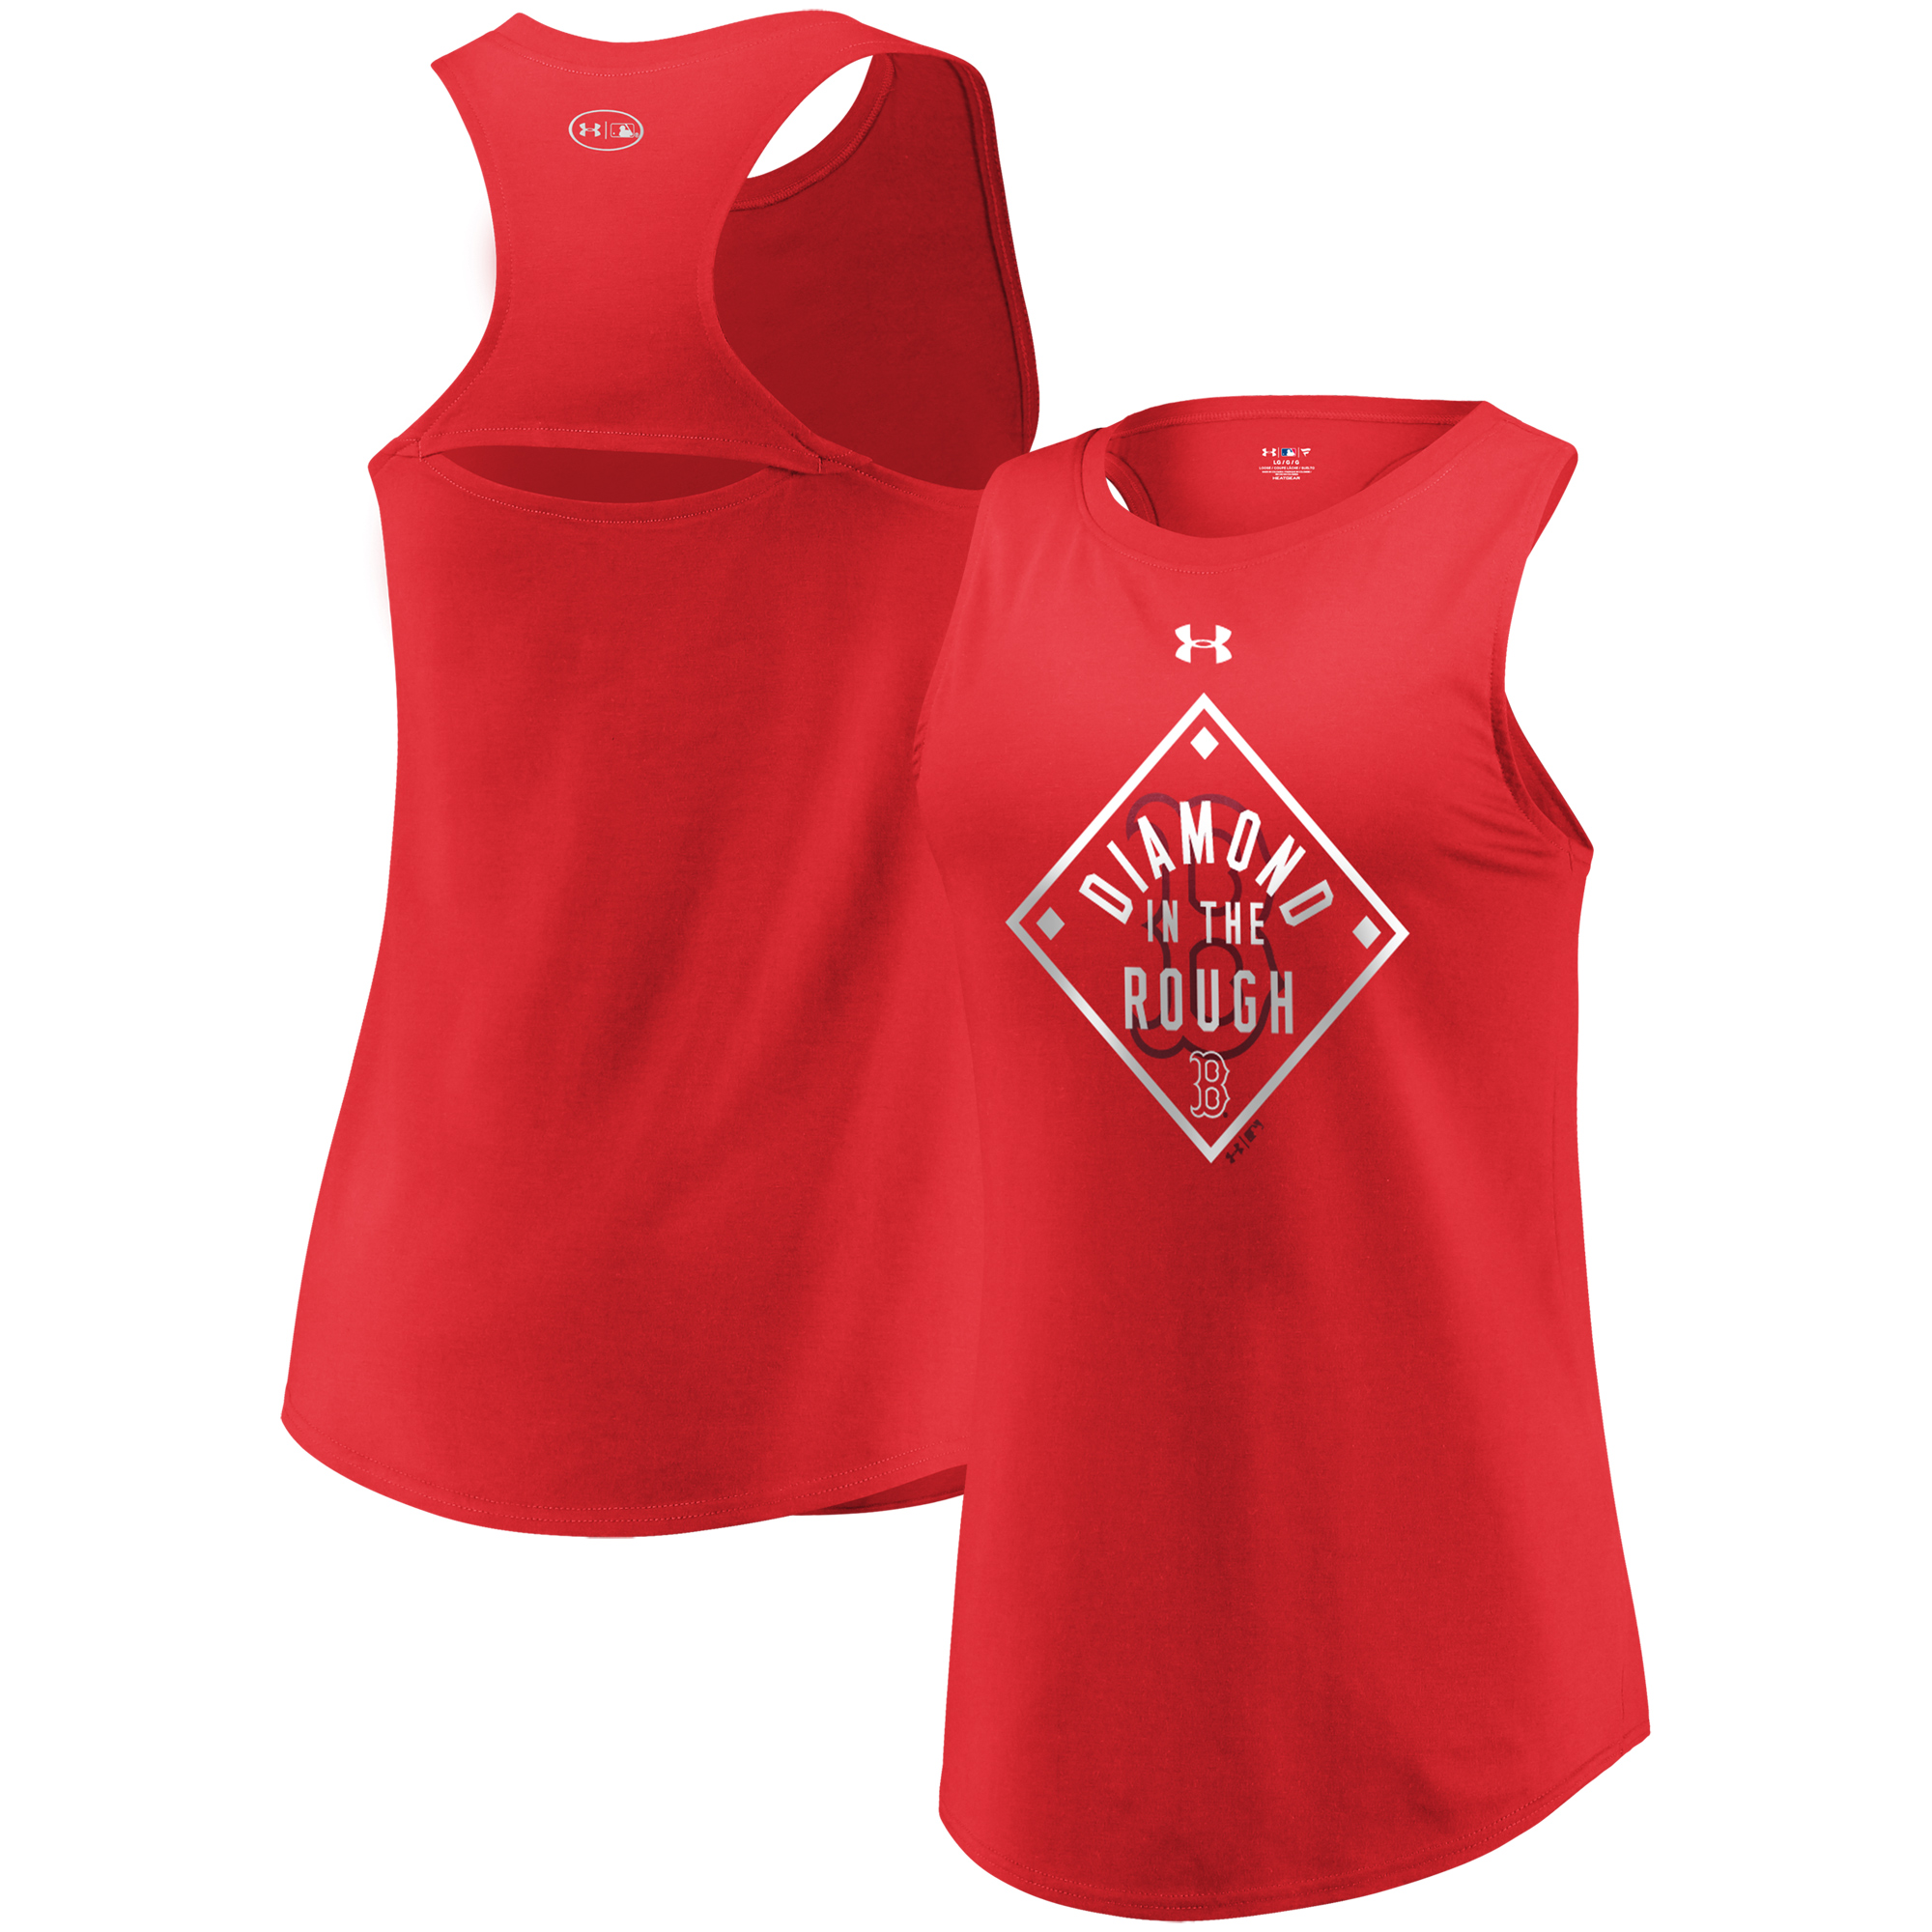 Boston Red Sox Under Armour Women's Passion Diamond Tri-Blend Performance Tank Top Red by MAJESTIC LSG